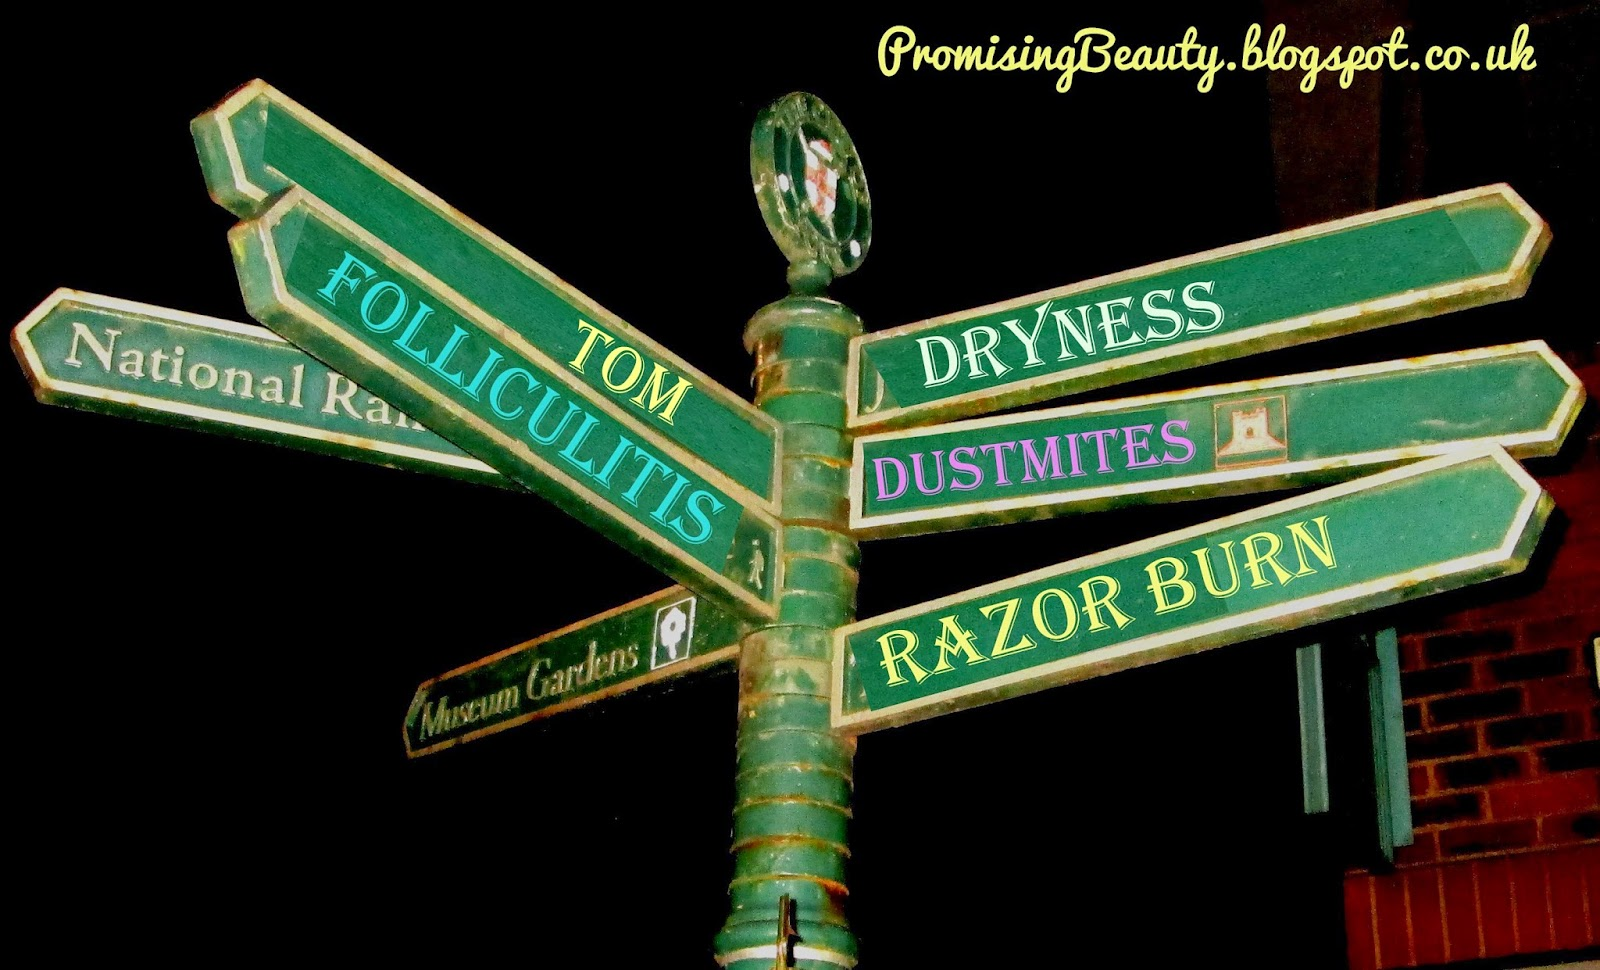 Green signpost with signs for causes of shaving irritation, time of the month, dryness, dustmites, razor burn, folliculitis.